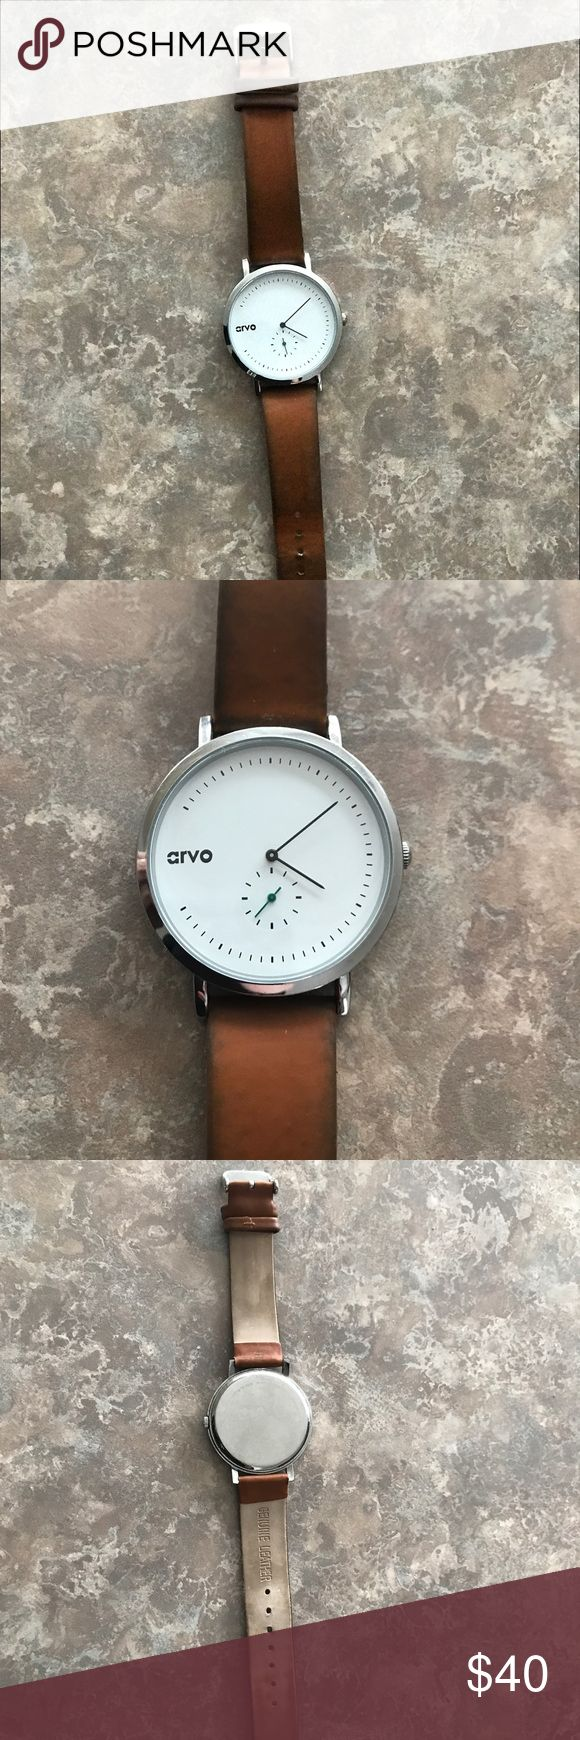 arvo watch arvo watch // genuine leather band, large face // needs battery but a great watch! // it's the larger of the two faces from their website! arvo Accessories Watches